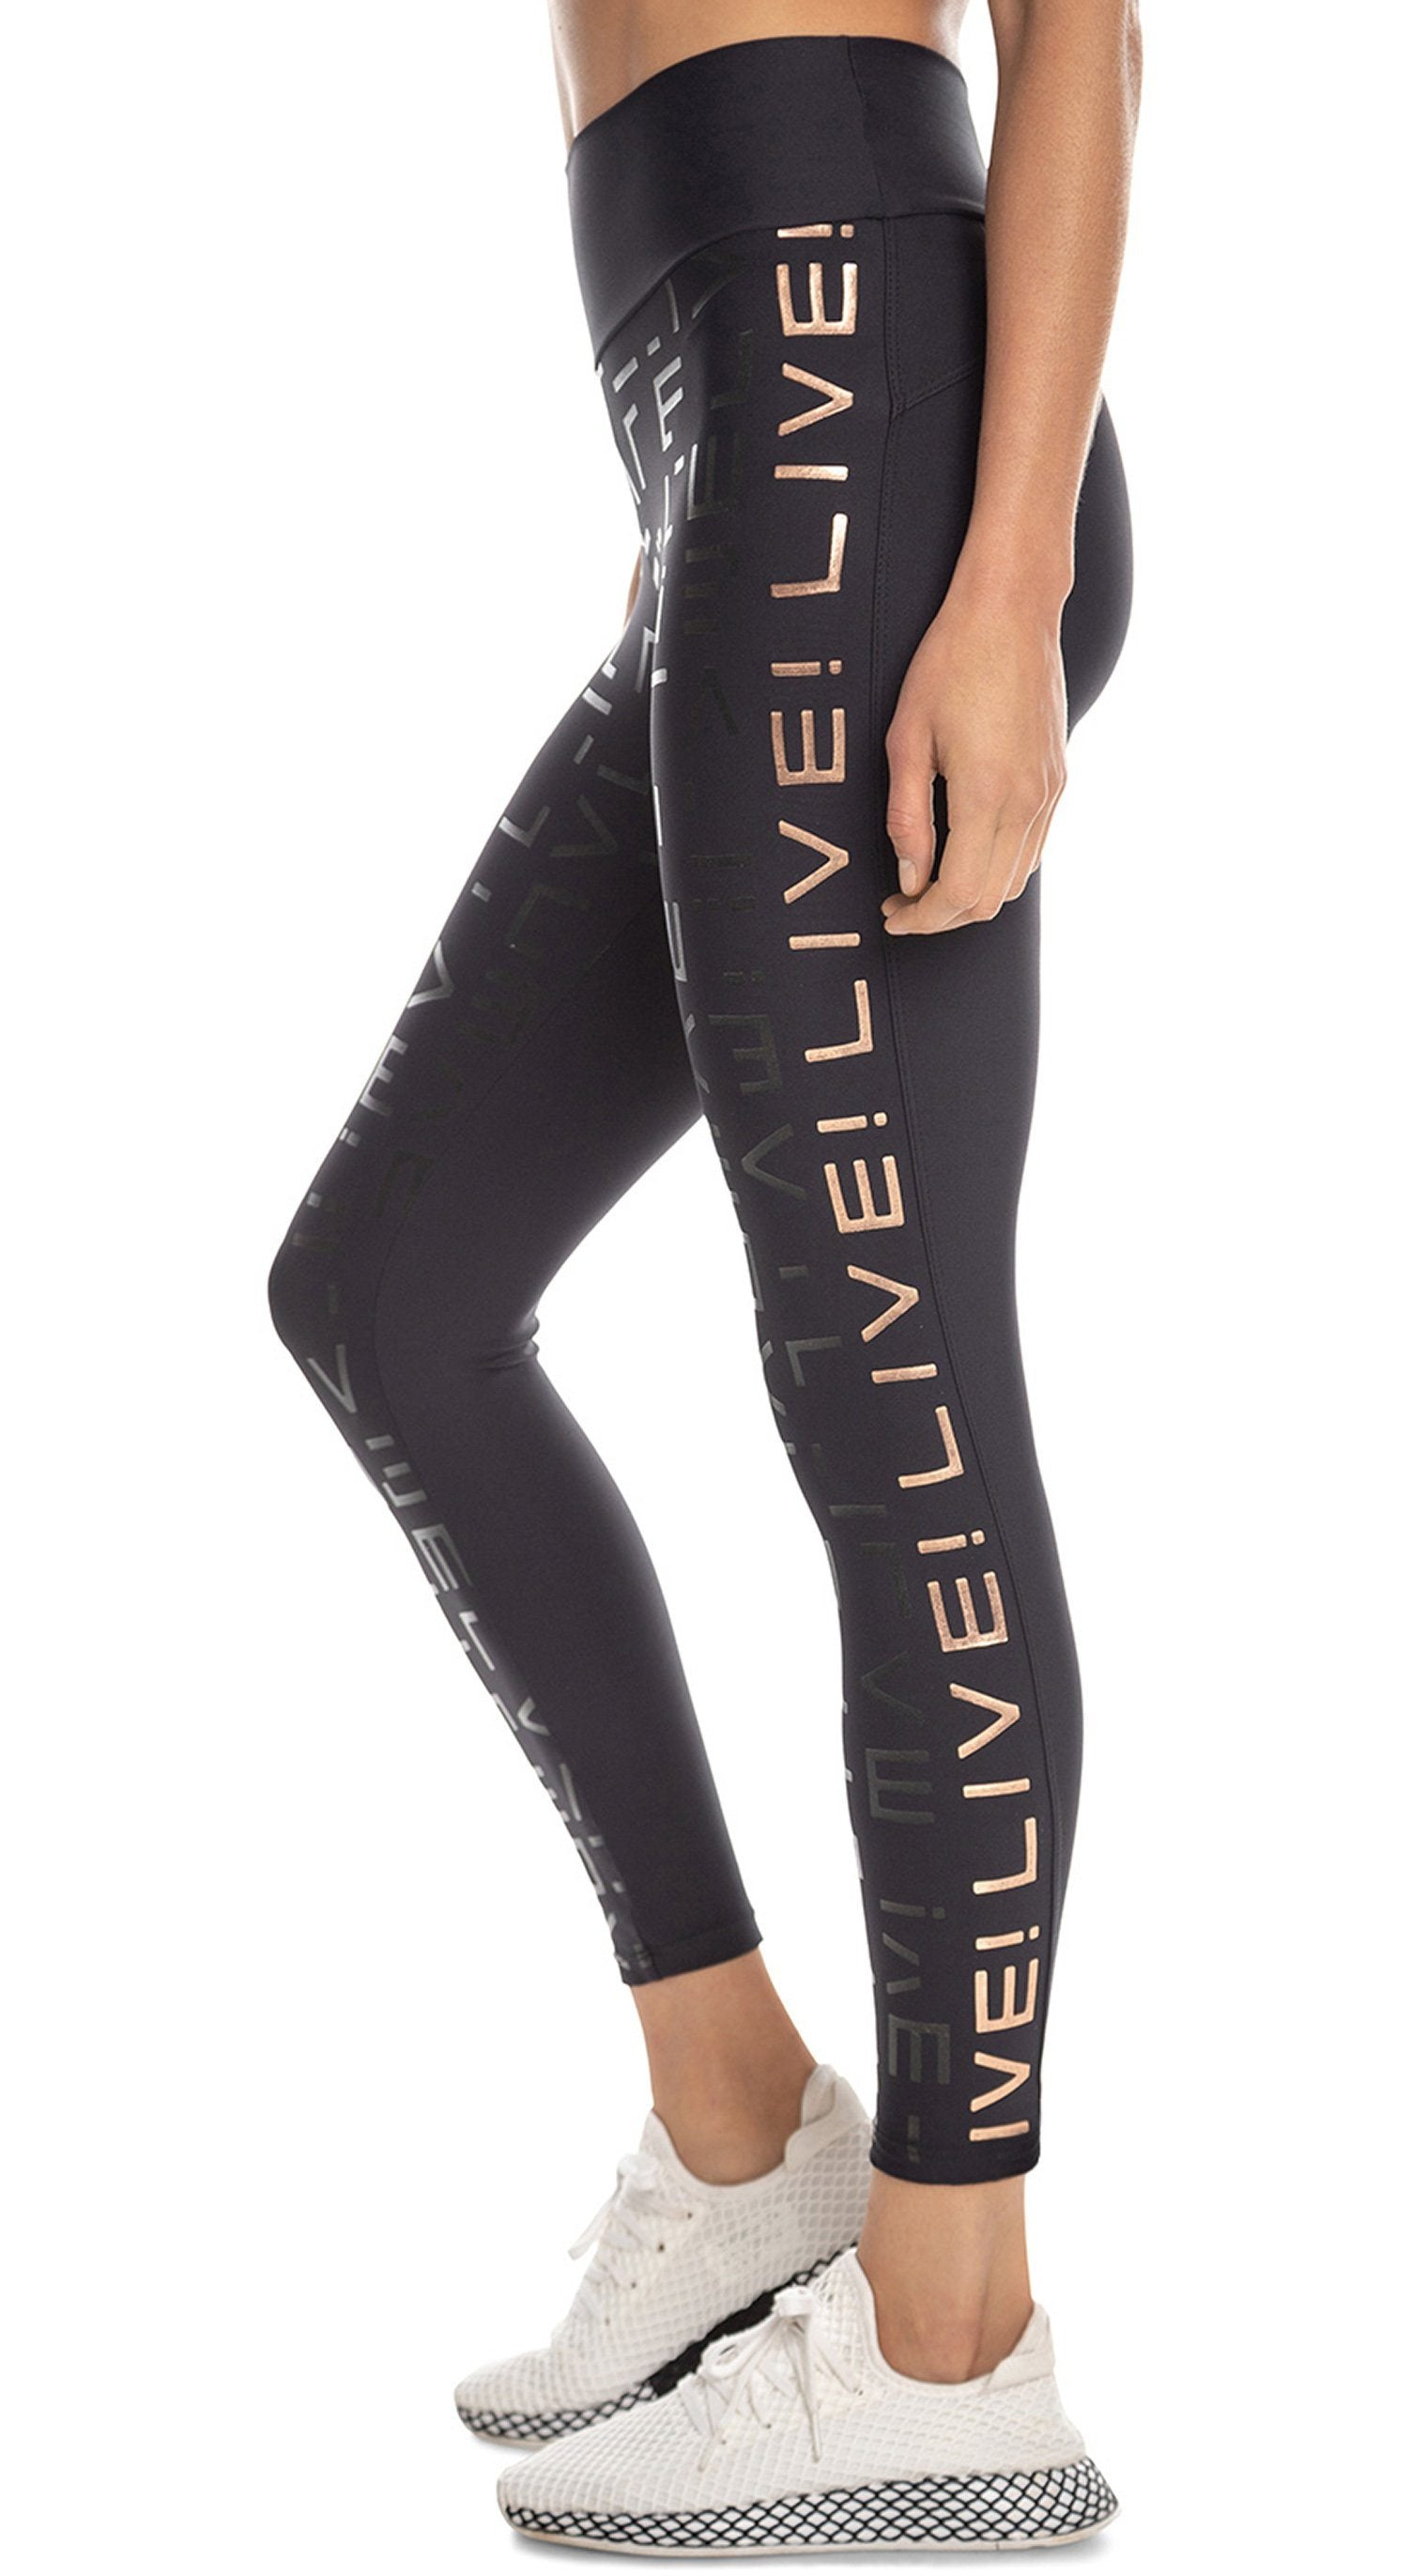 Brazilian Legging - Lux Live! Icon Leggings Black